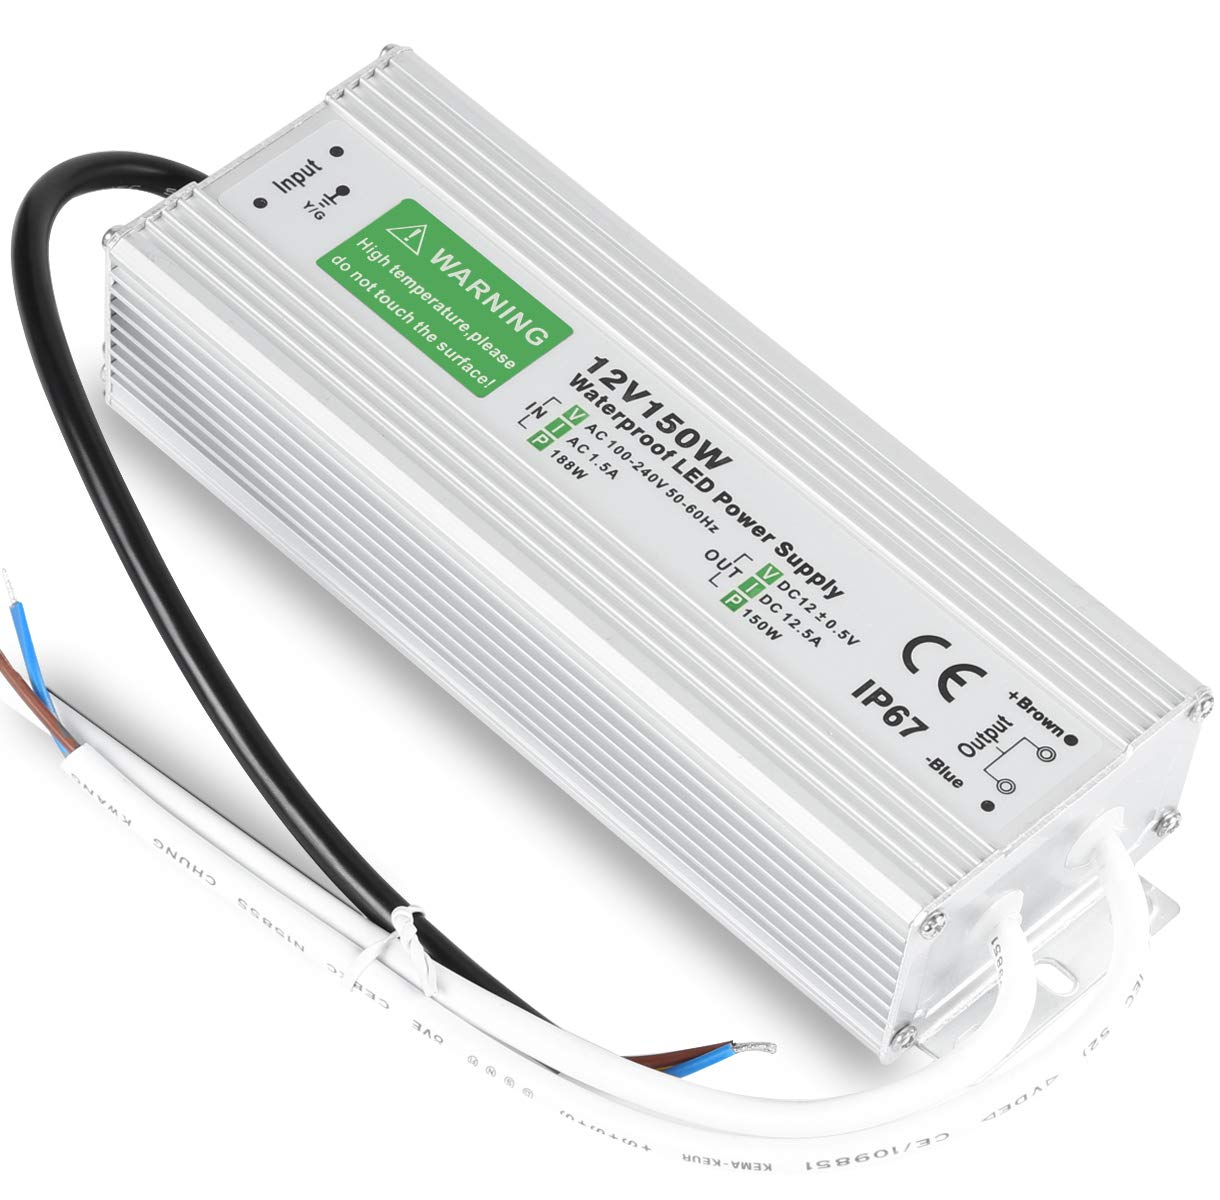 LED Driver 150W Durable Waterproof IP67 12V DC Transformer Compatible LED Lighting Module Low Voltage Power Supply Output Accessories by LEDMO